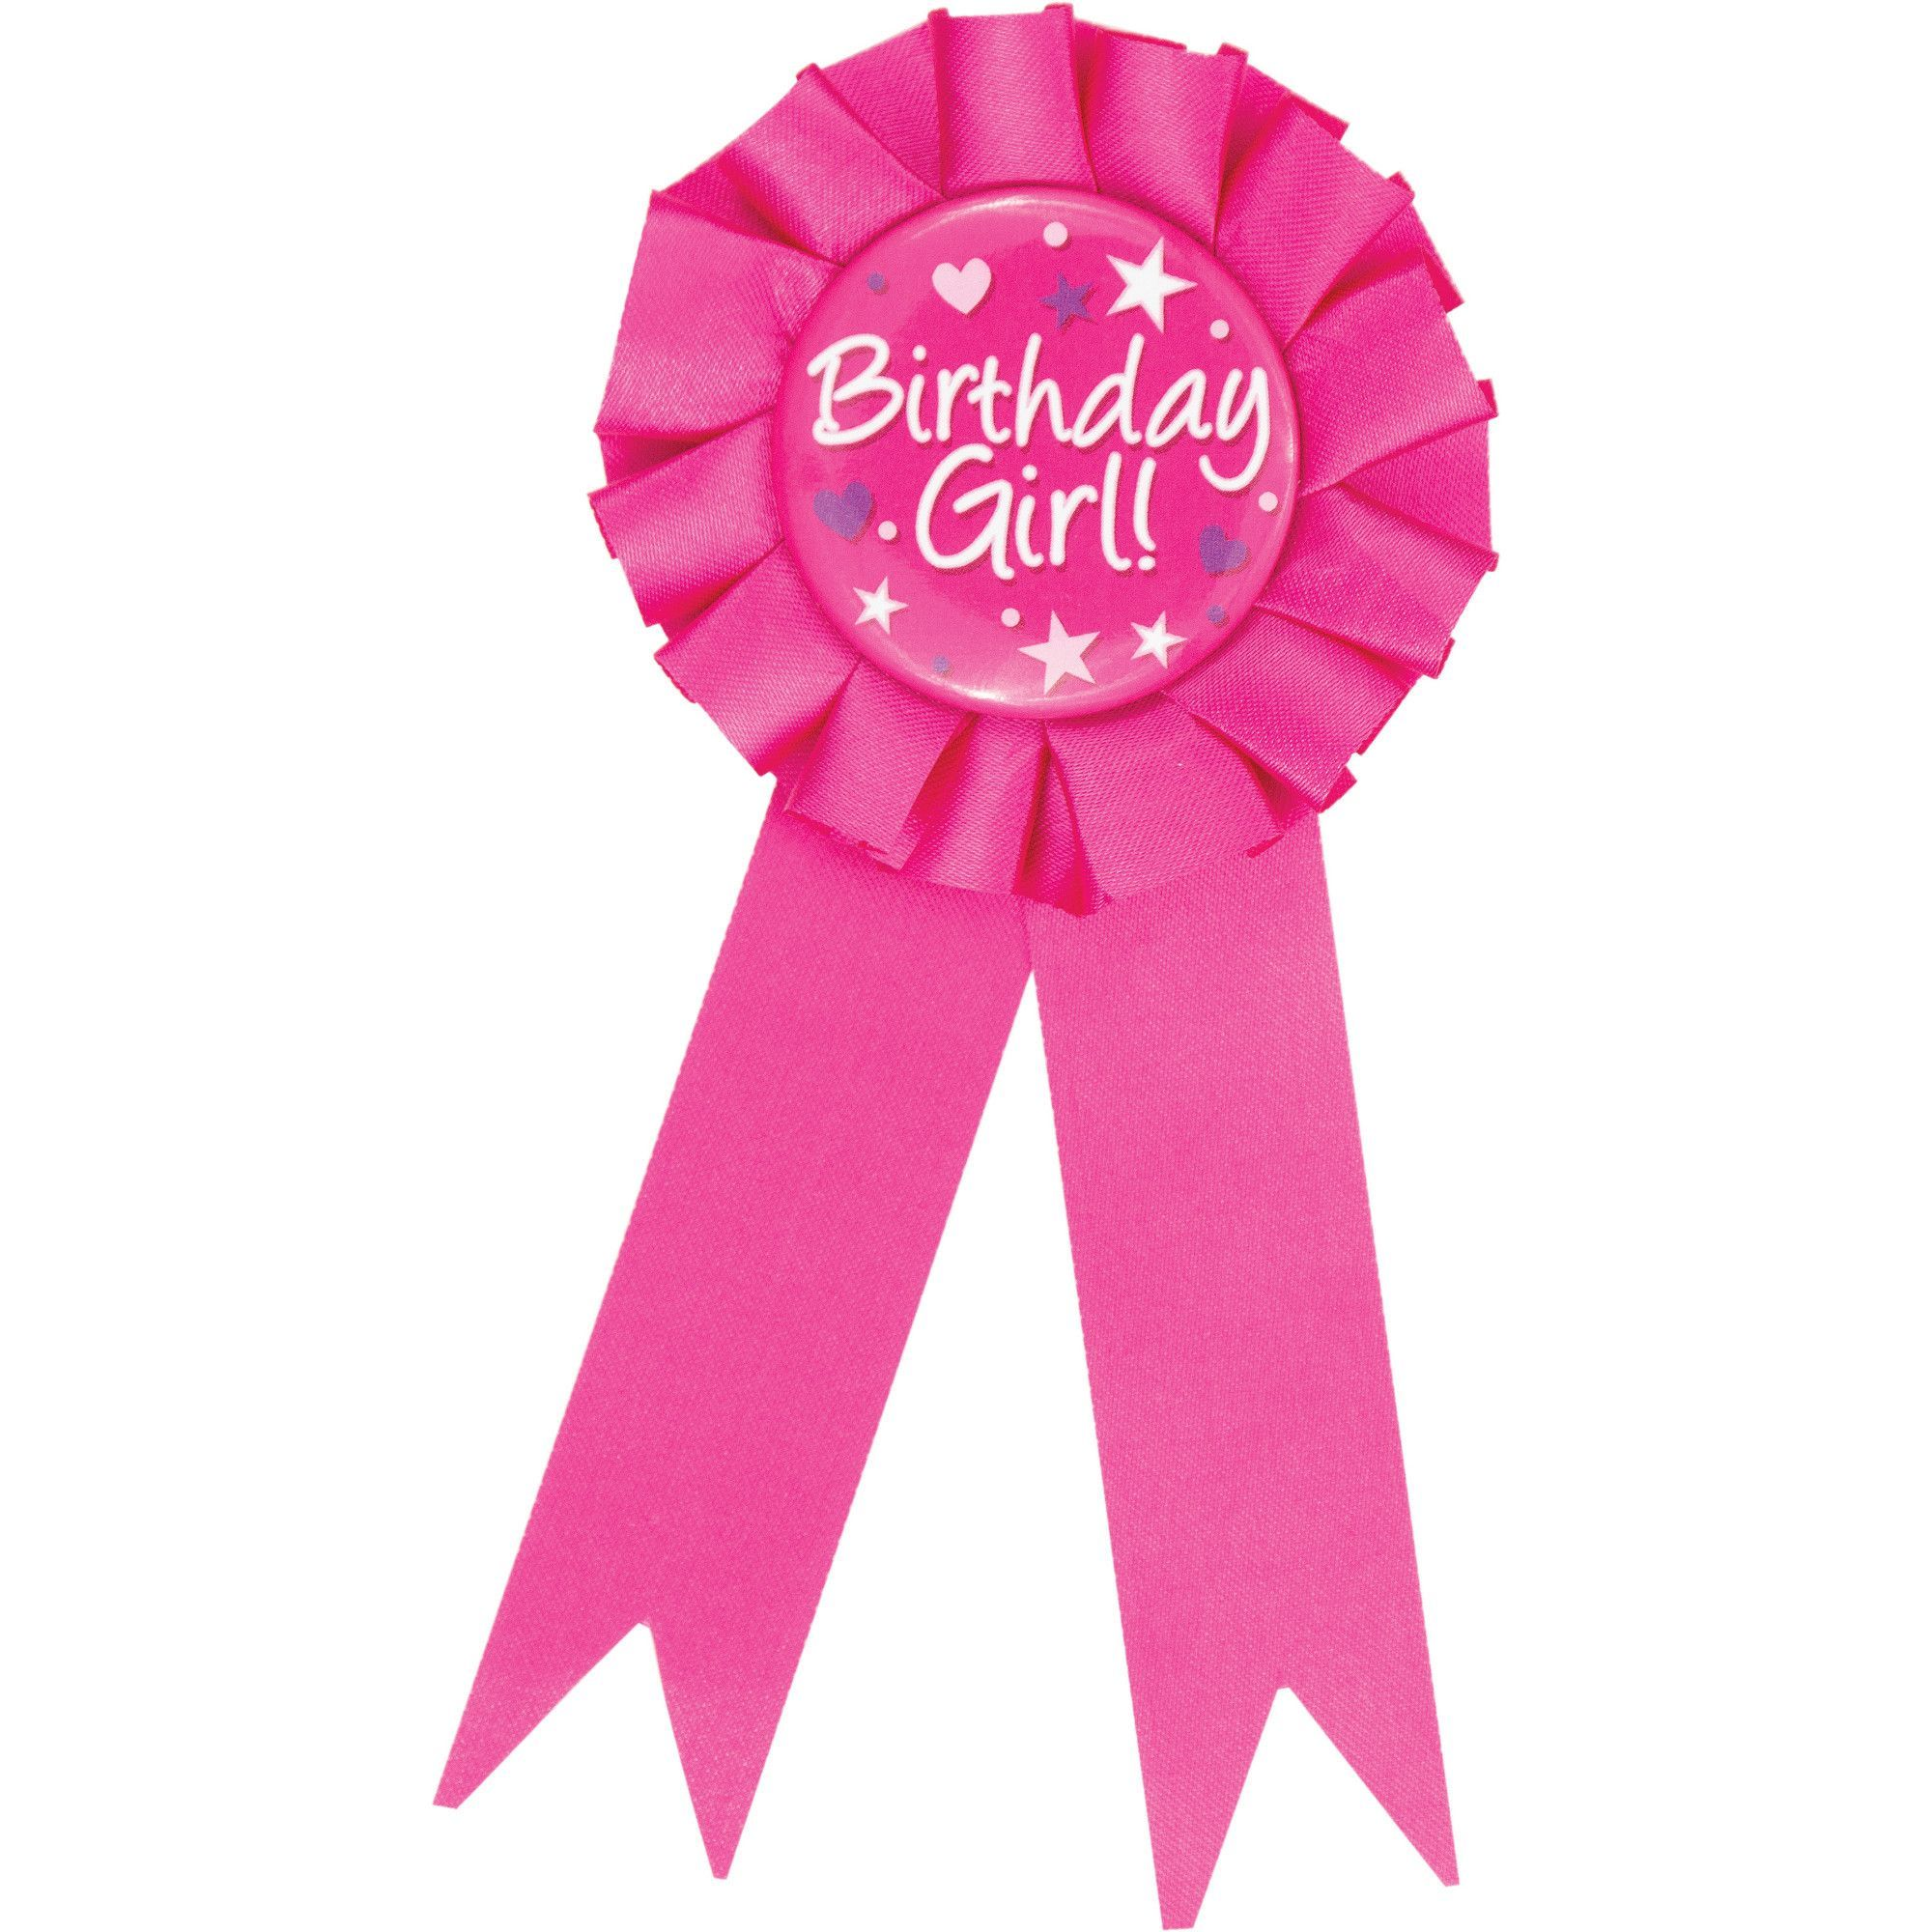 Birthday Girl Award Ribbons/Case of 12